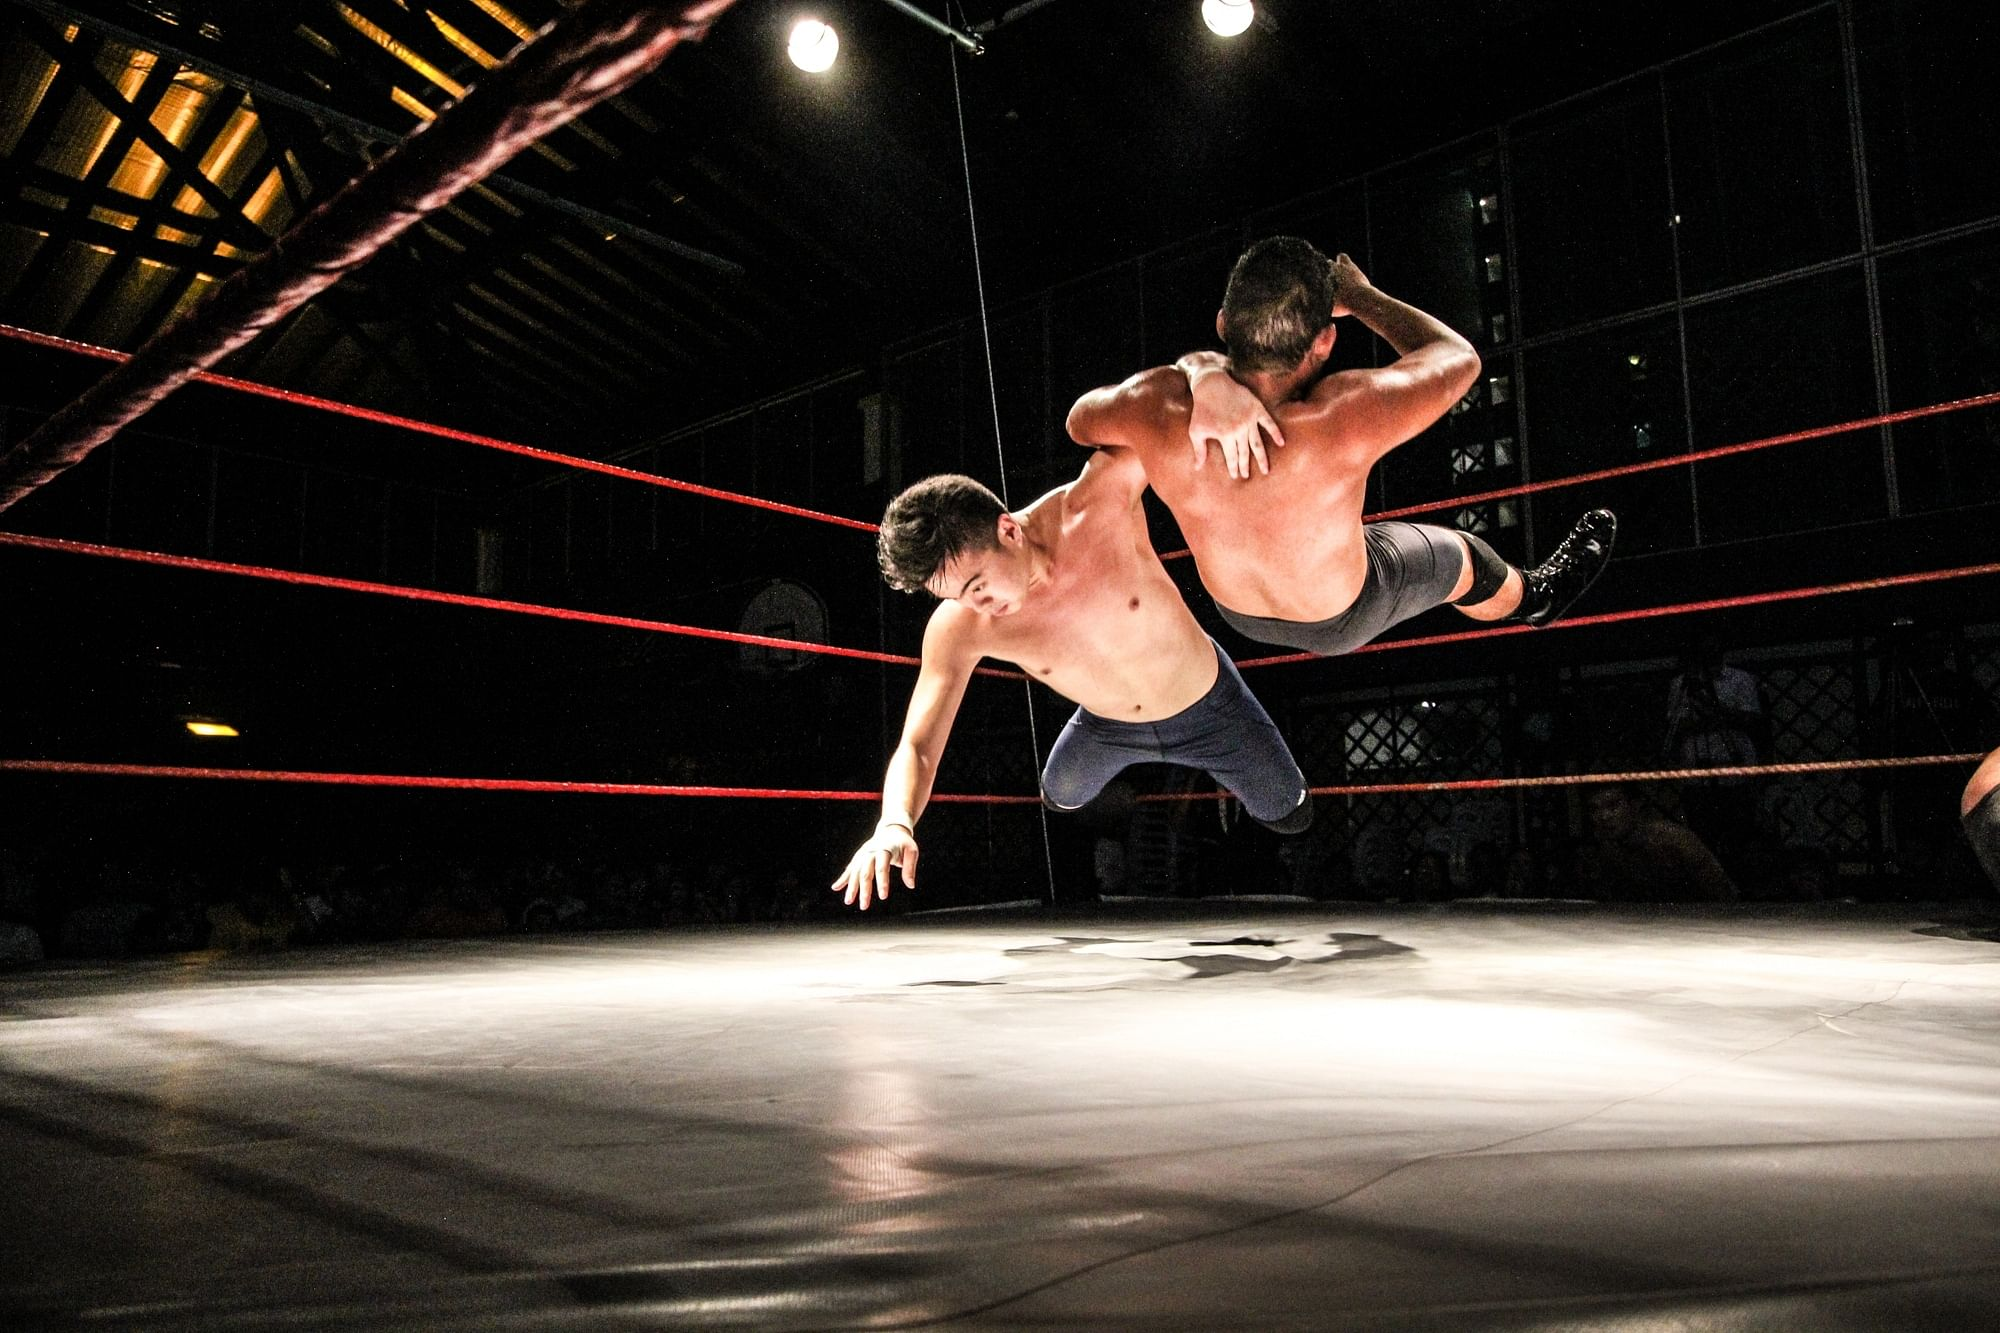 2014: The year of independents and pro wrestling